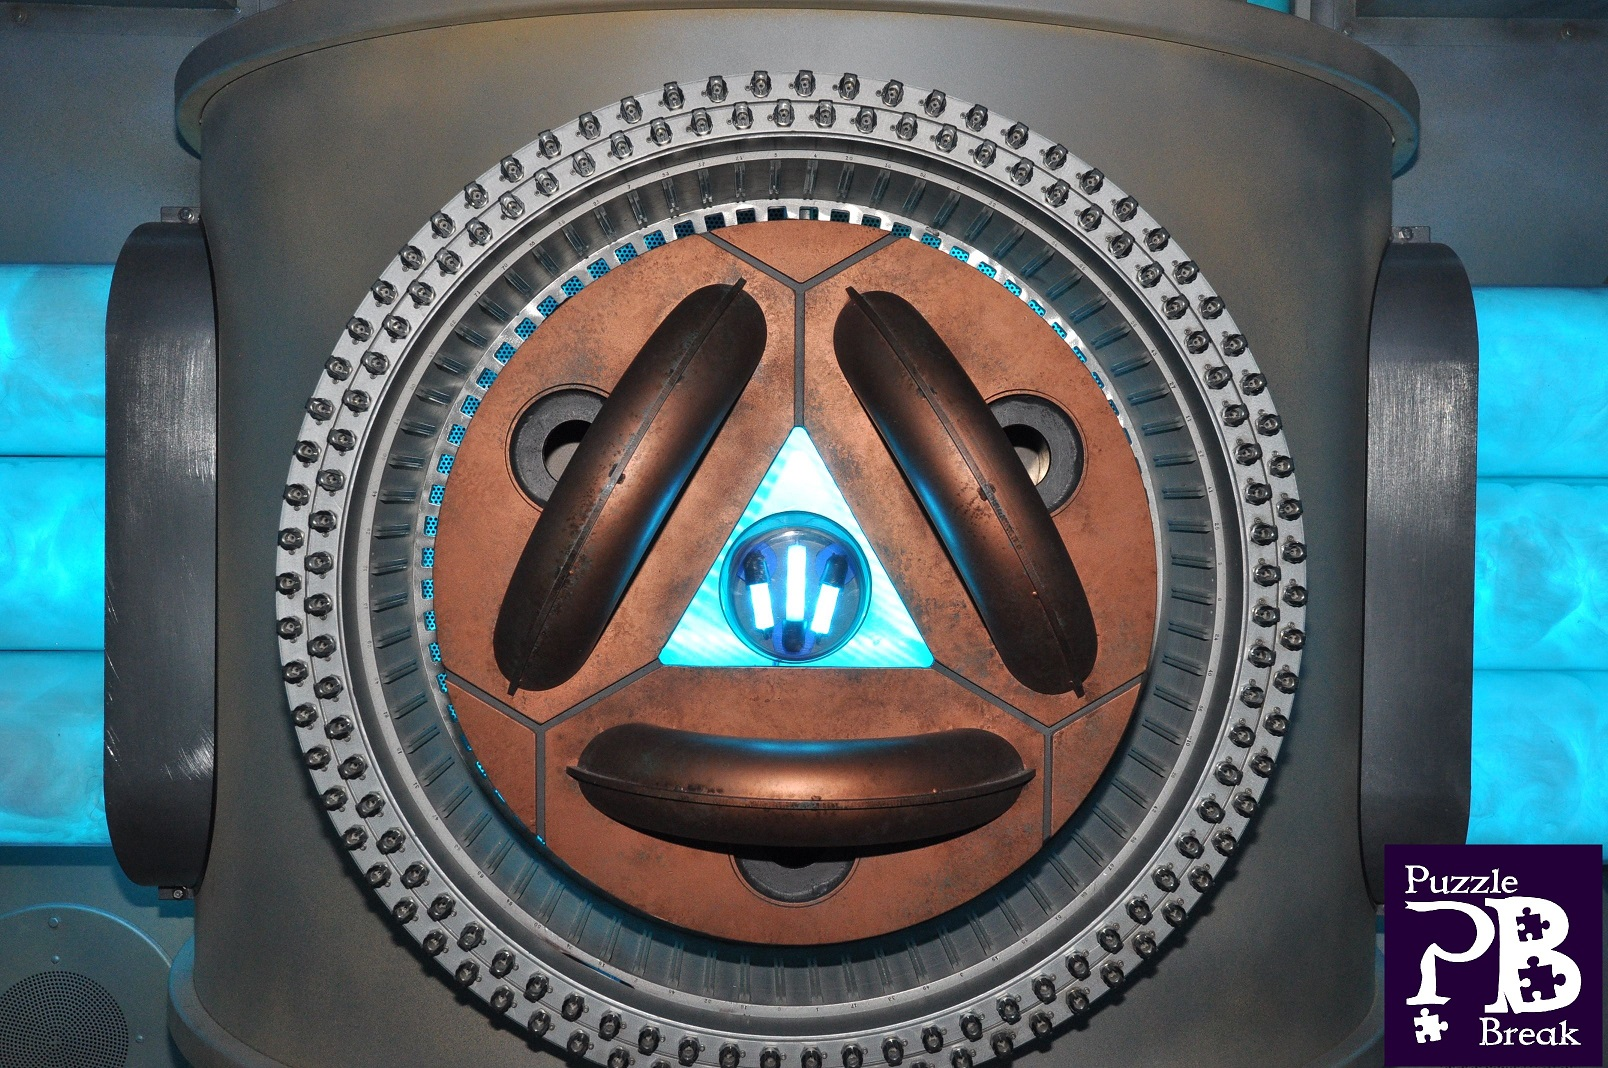 In-game image of the Rubicon. A blue glowing power source